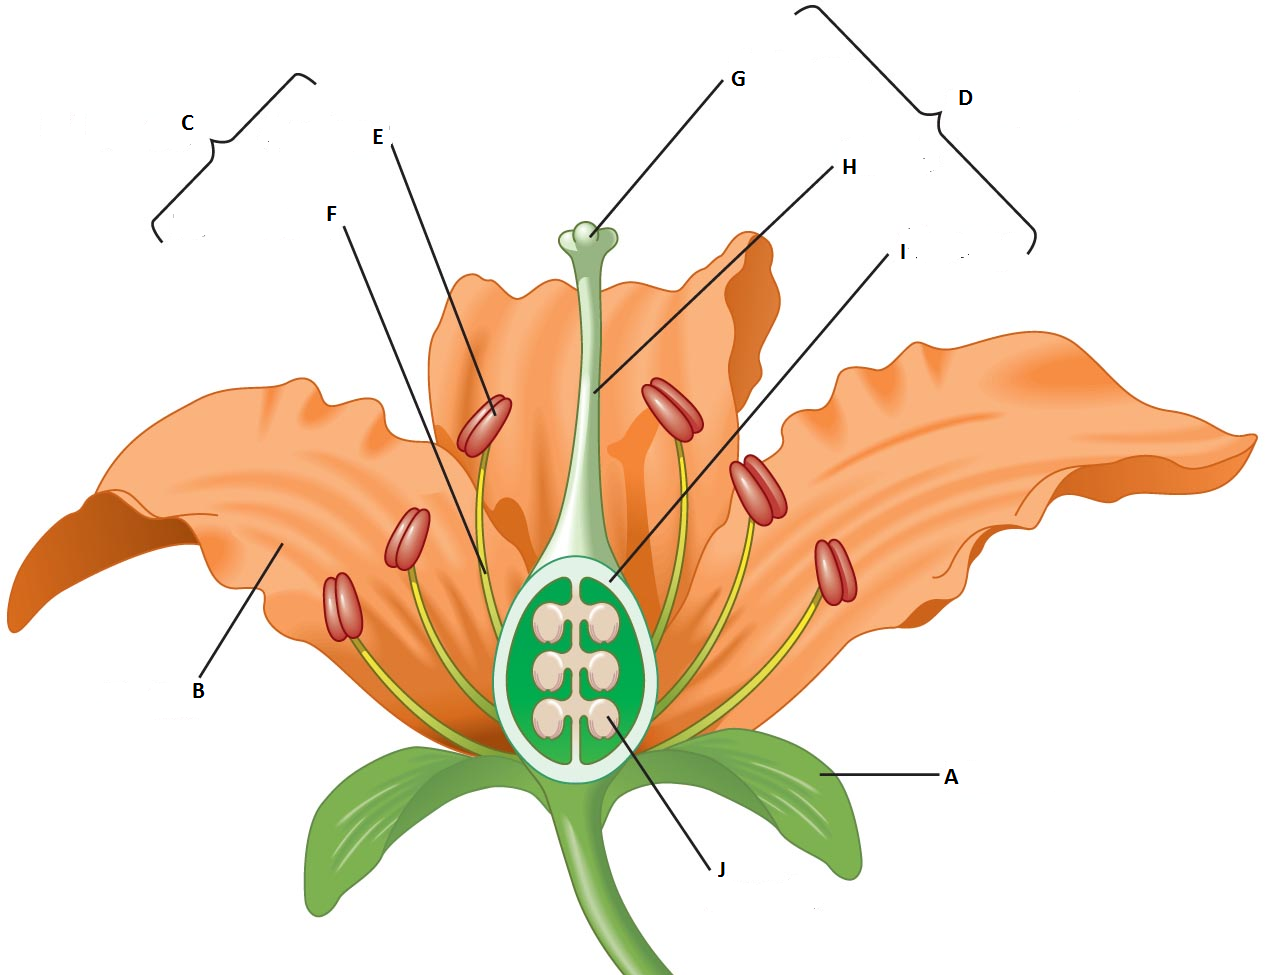 hight resolution of diagram quiz on flower parts biology multiple choice quizzes png 1265x975 unlabeled pollination diagram